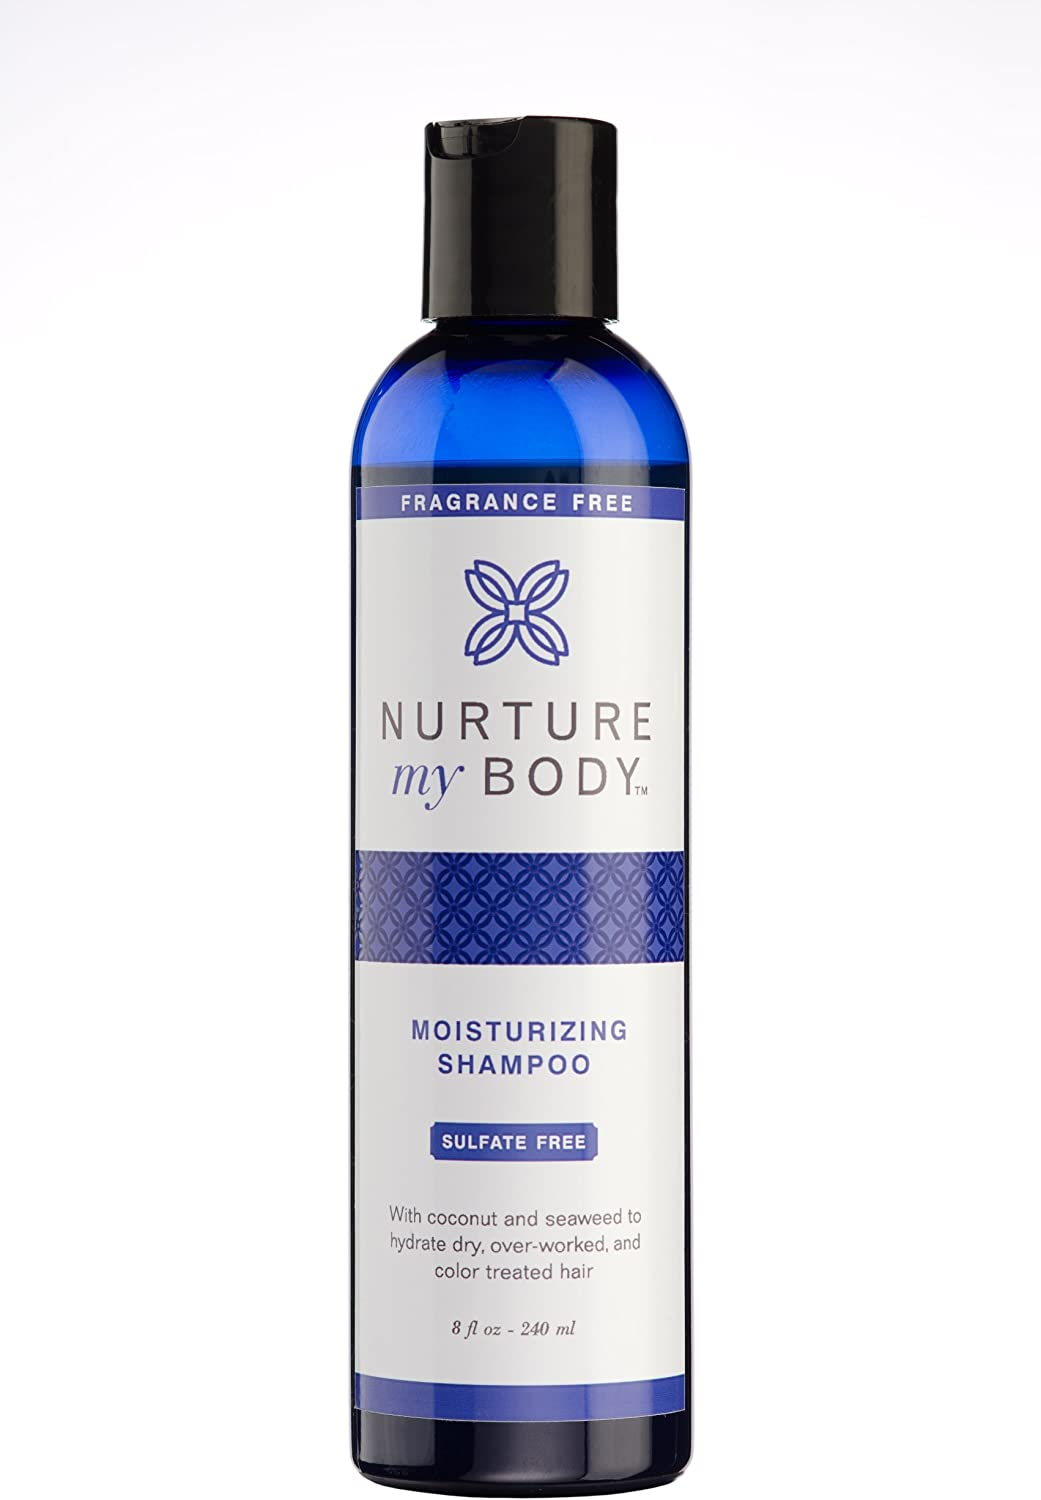 Moisturizing Shampoo by Nurture My Body | Fragrance Free, All-Natural, Handcrafted with Certified Organic Ingredients (8oz)